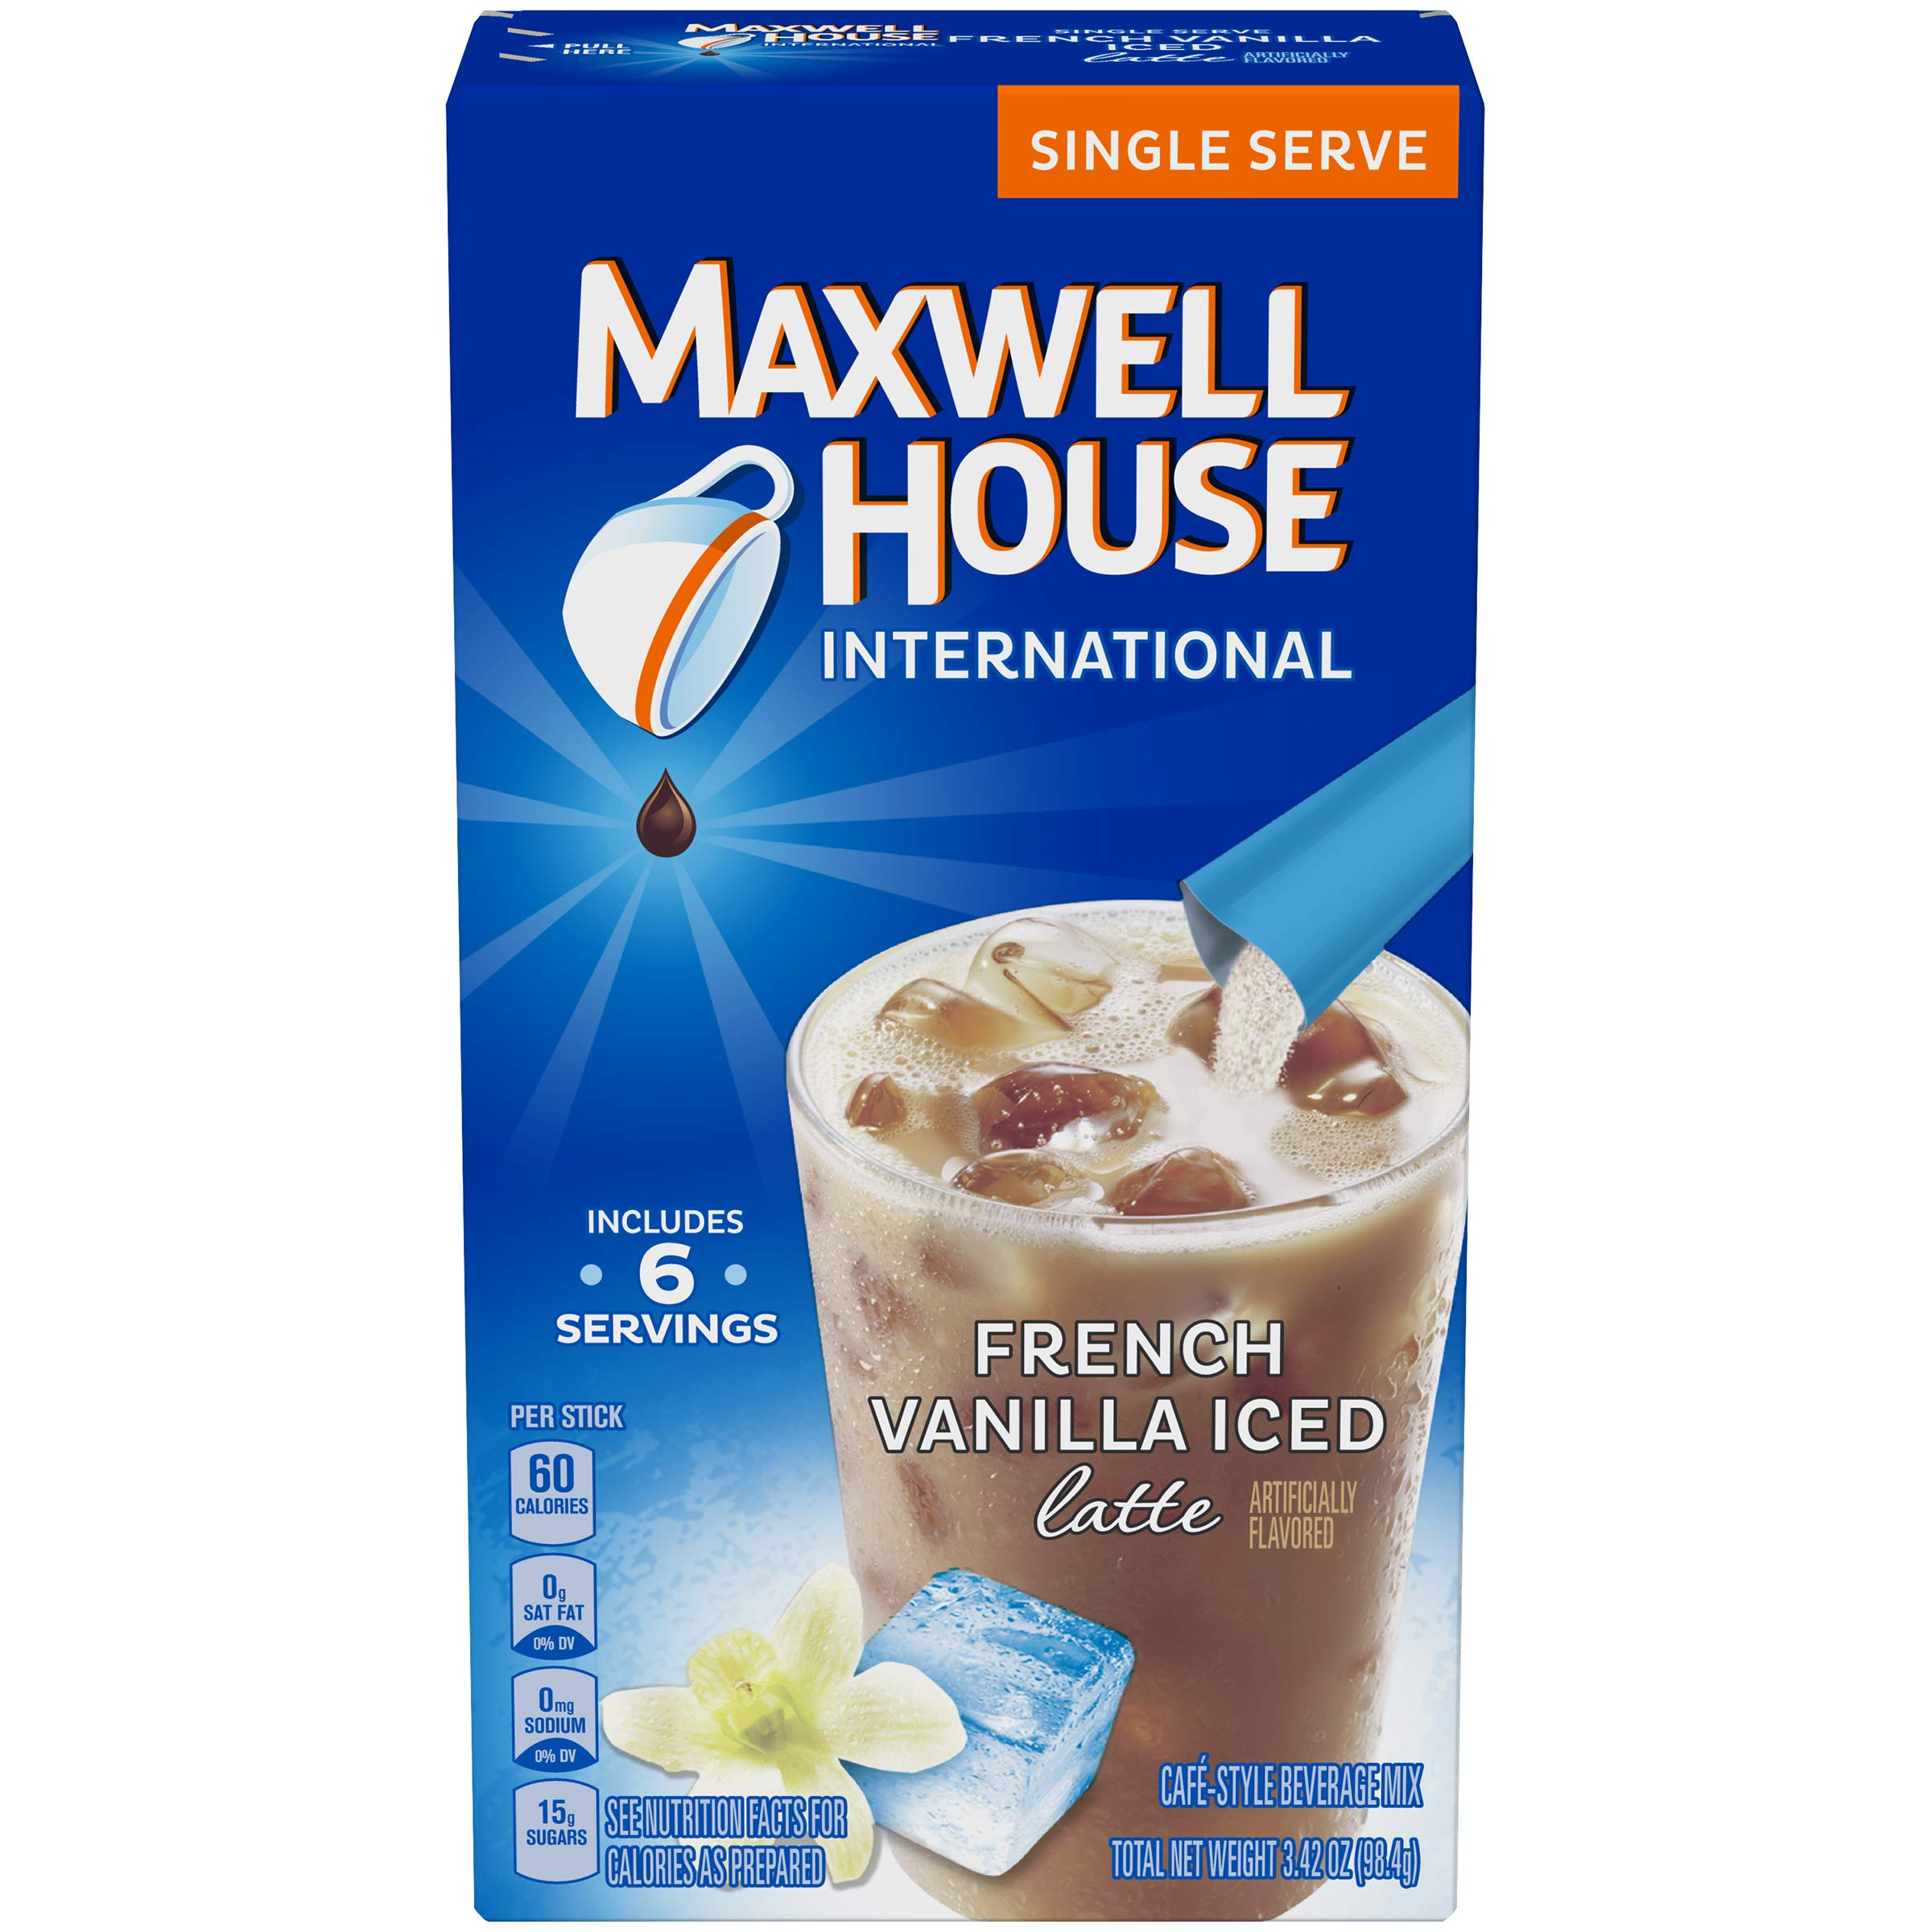 Maxwell House International French Vanilla Iced Latte Cafe-Style Beverage Mix, Caffeinated, 6 - 0.57 Ounce Packets (Pack of 8) by MAXWELL HOUSE